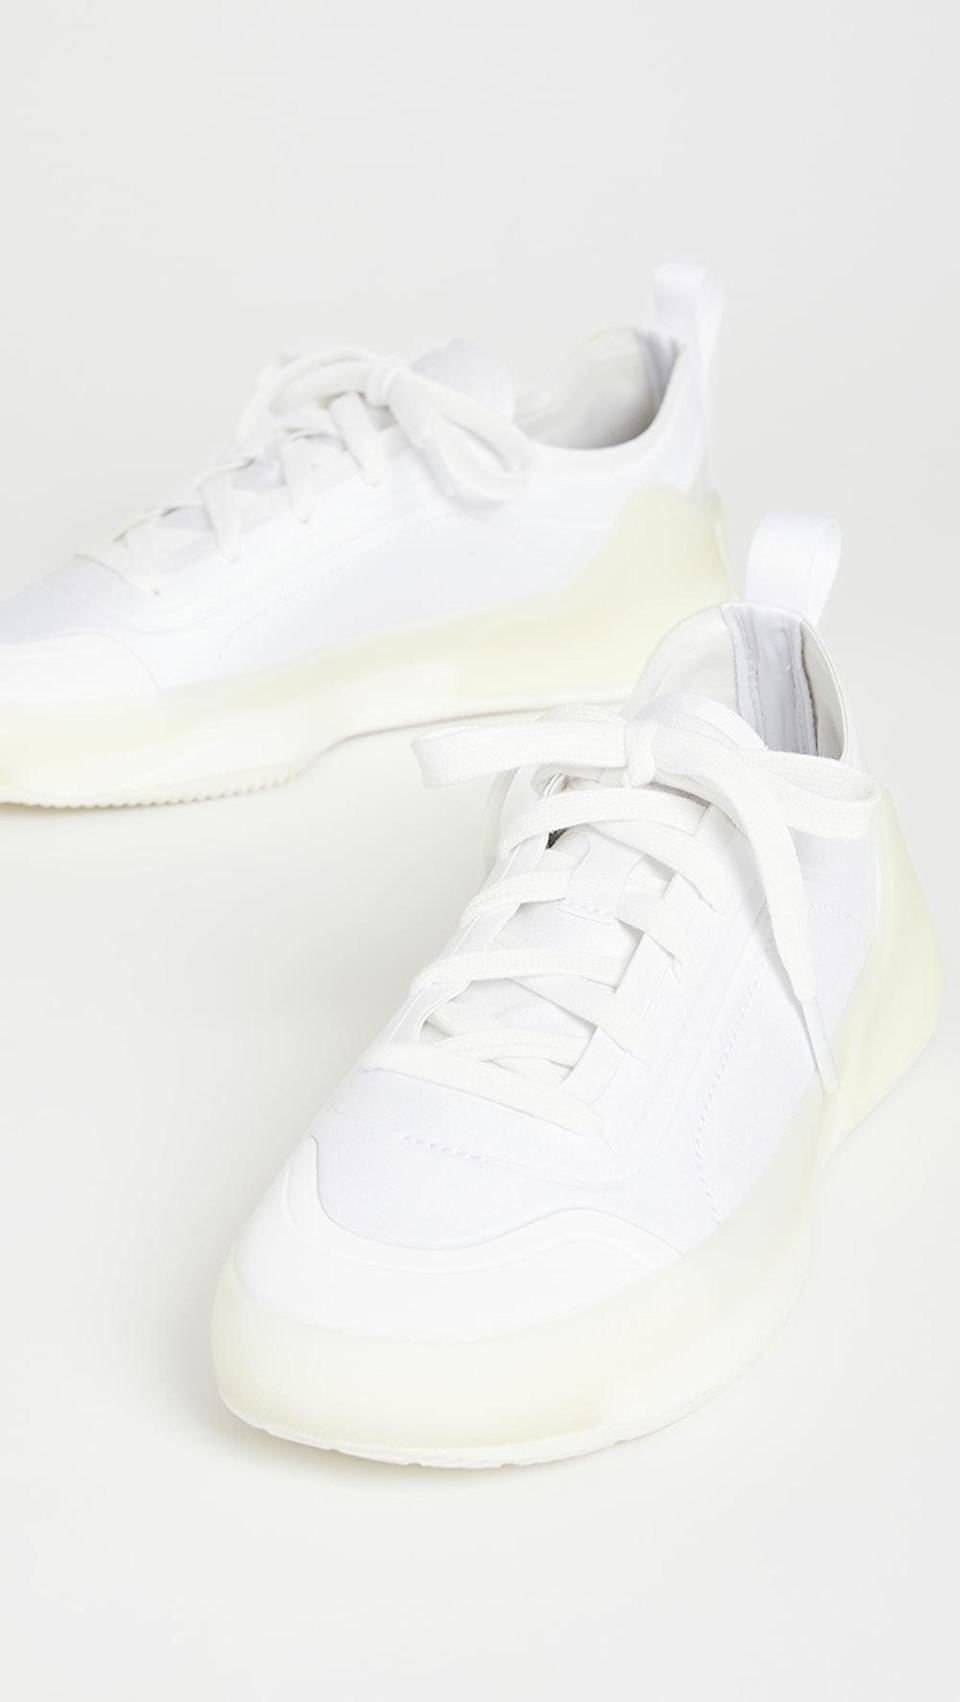 """<p><span>Adidas by Stella McCartney Asmc Treino Sneakers</span> ($180)</p> <p>""""I'm all about athletic sneakers these days, I rock them with leggings, sweatsuits, jeans, and even trousers. I want something new that's not too athletic but still sporty and stylish and these asneakers are the ones. Not only do they look cool, but I know they'll be comfy and perfect everyday."""" - Krista Jones, associate editor, Shop</p>"""